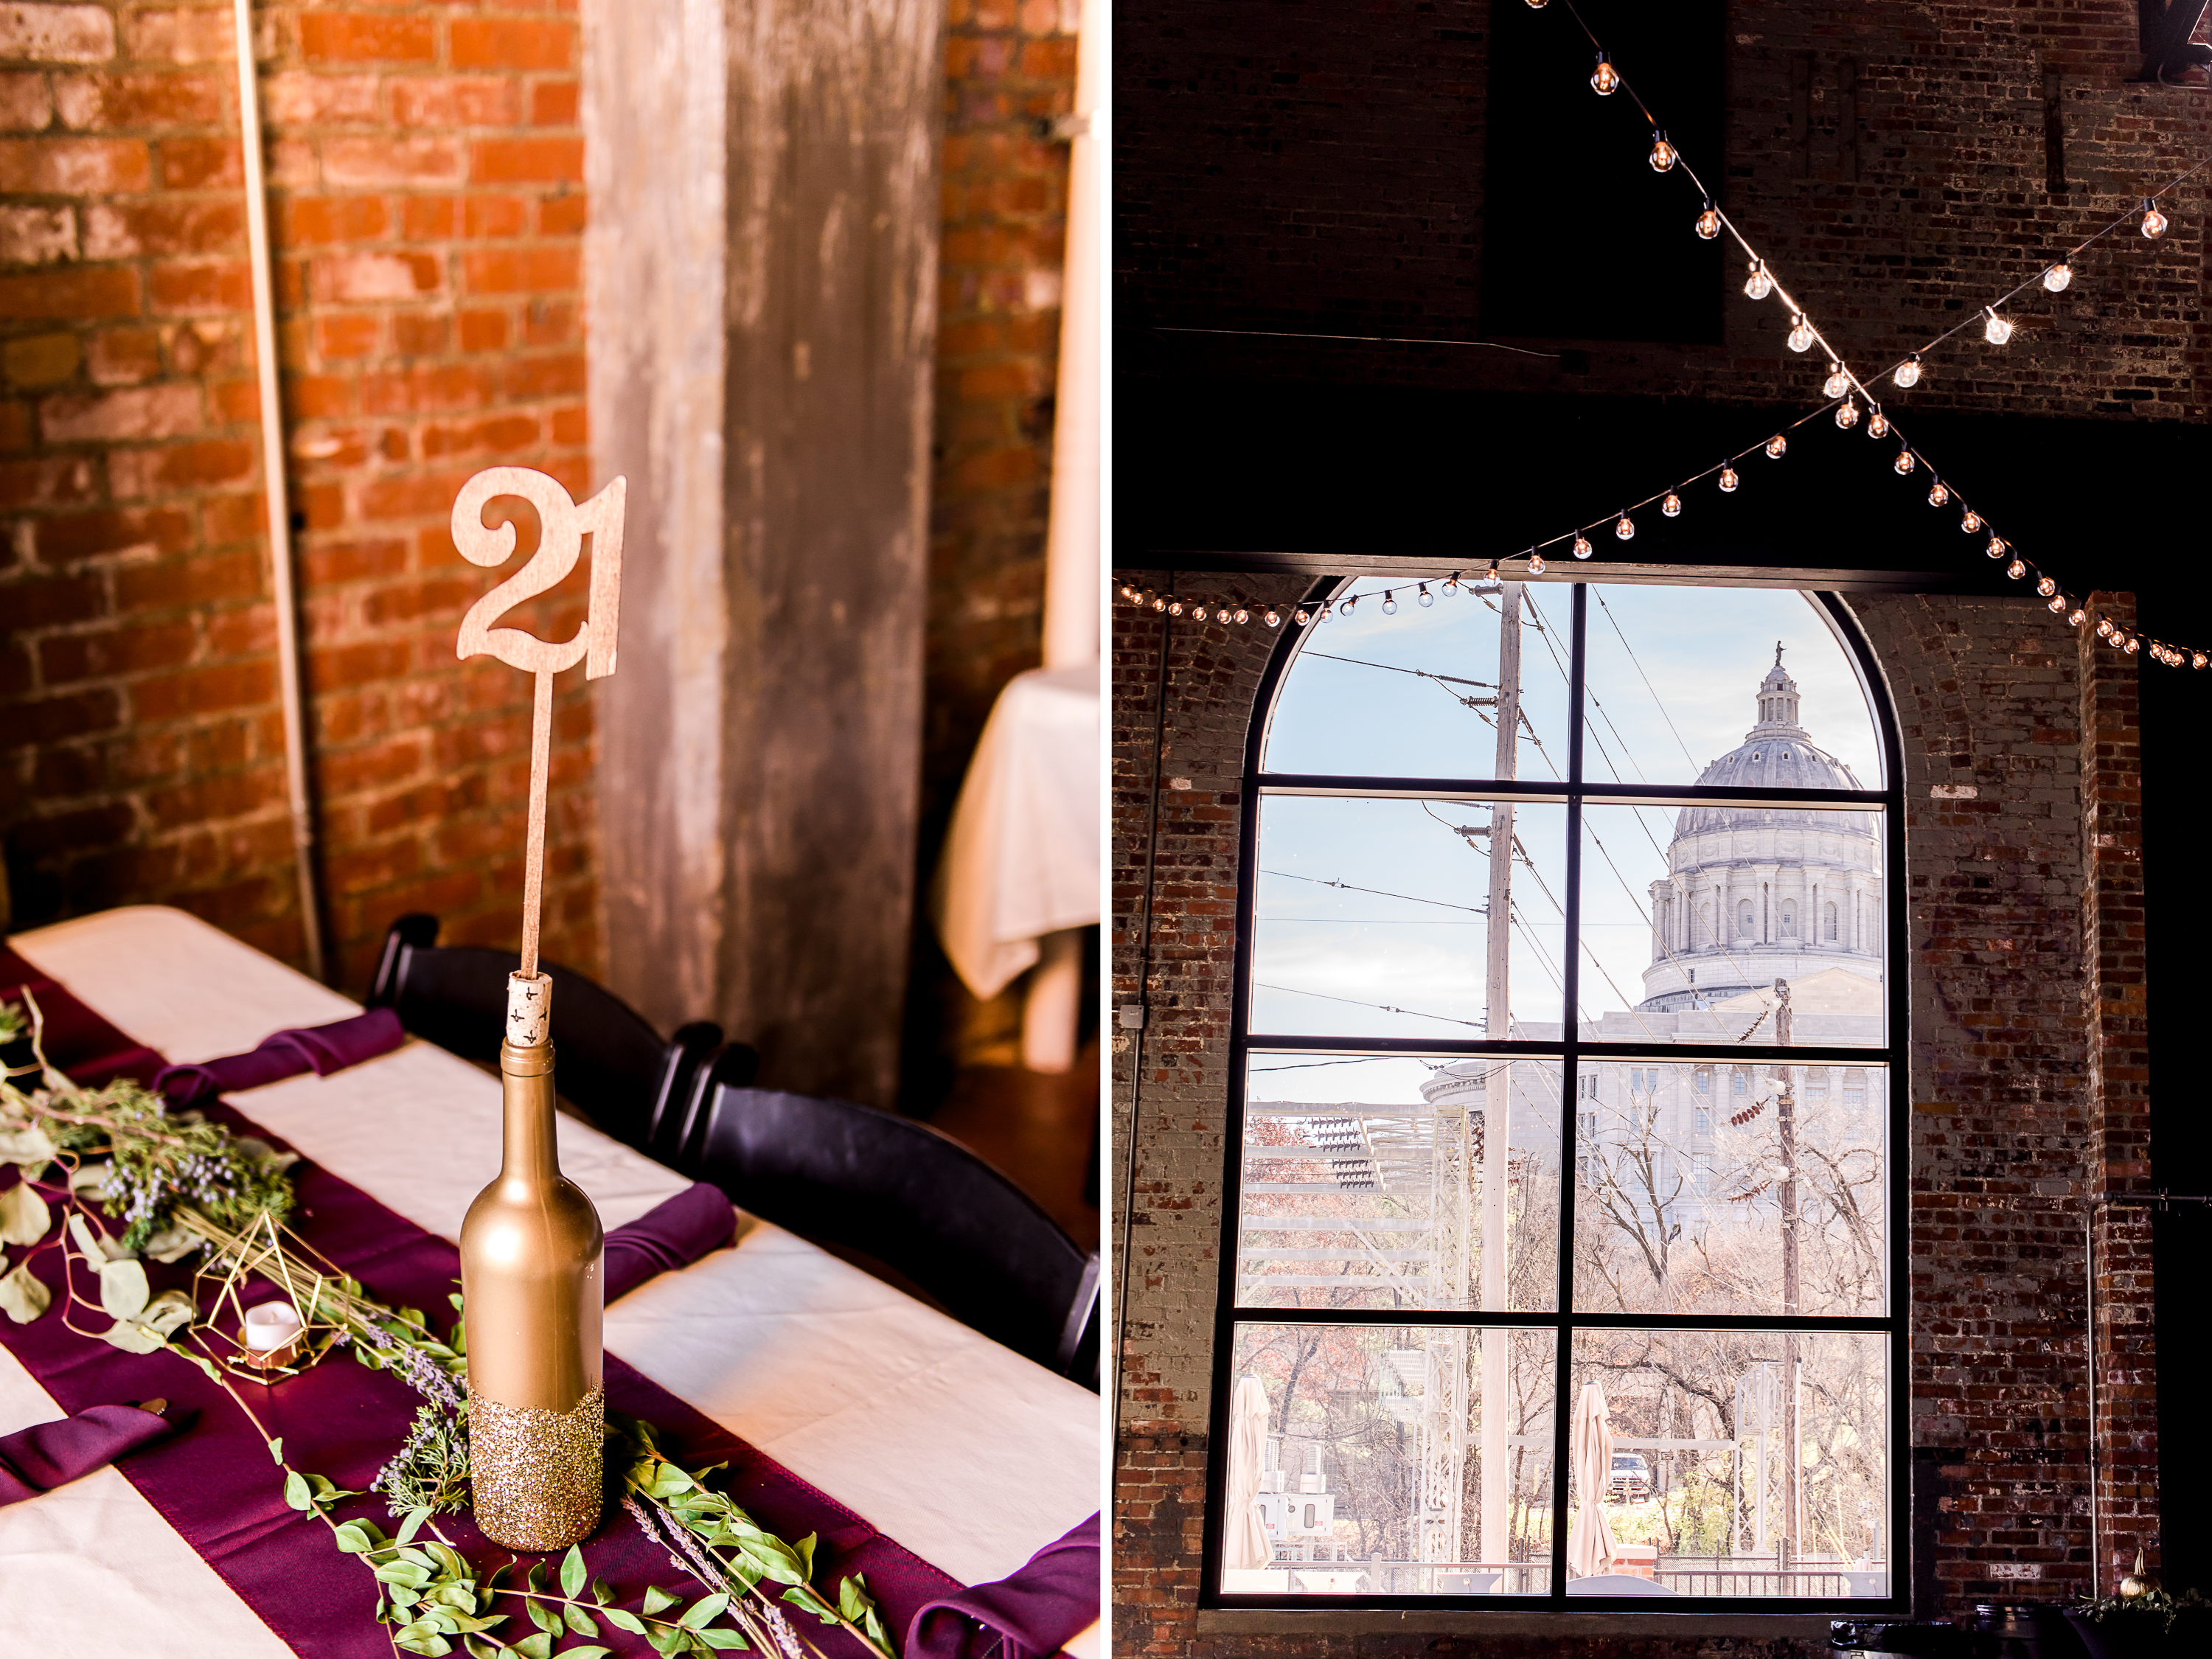 The-Millbottom-Jefferson-City-Missouri-Wedding-Details-Gold-and-Marsala-Wedding